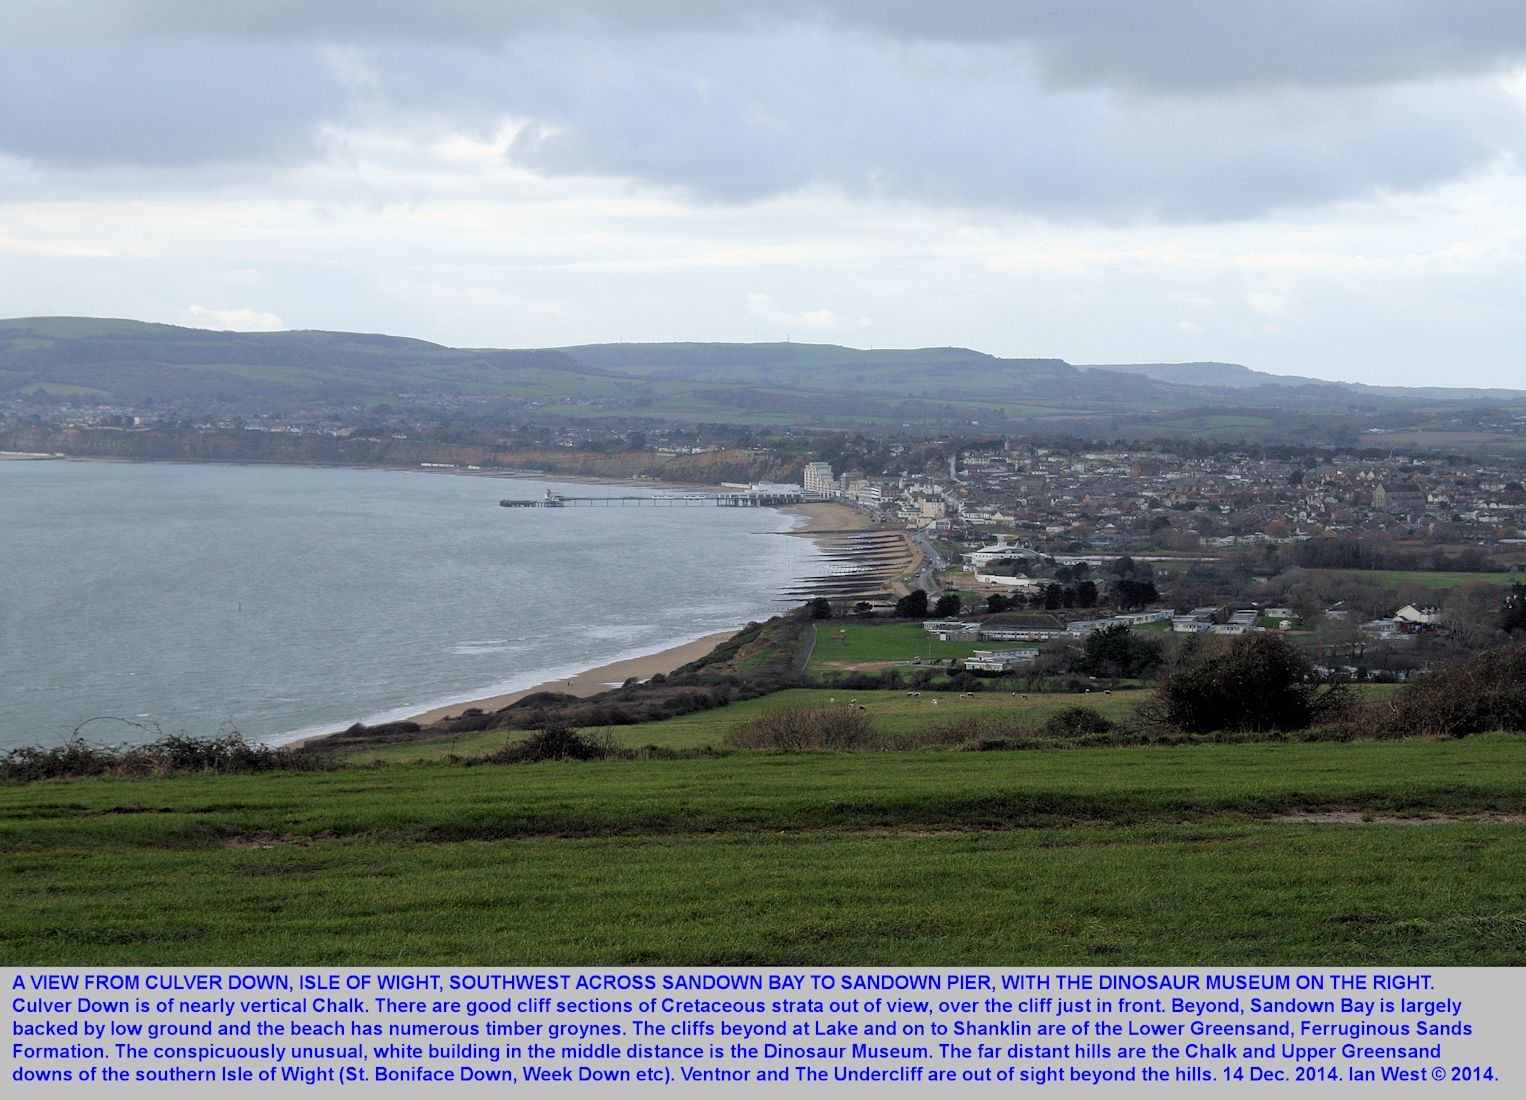 Sandown Bay, view of the coast from Culver Down, Isle of Wight, December 2014, Ian West